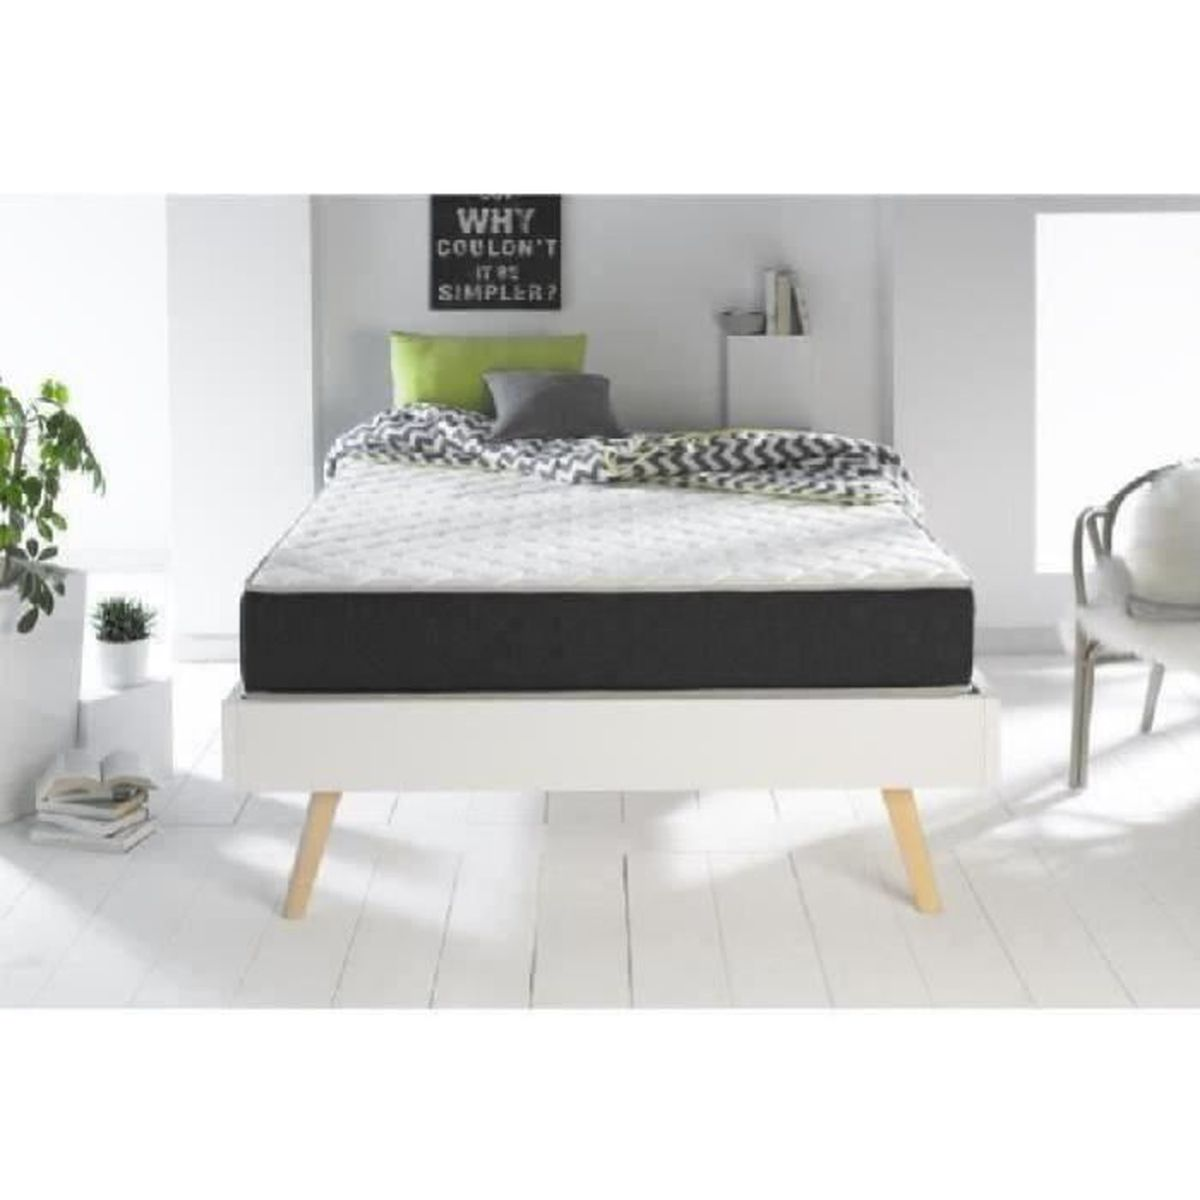 dormipur v810 matelas m moire de forme gel 5900246347585 achat vente matelas cdiscount. Black Bedroom Furniture Sets. Home Design Ideas